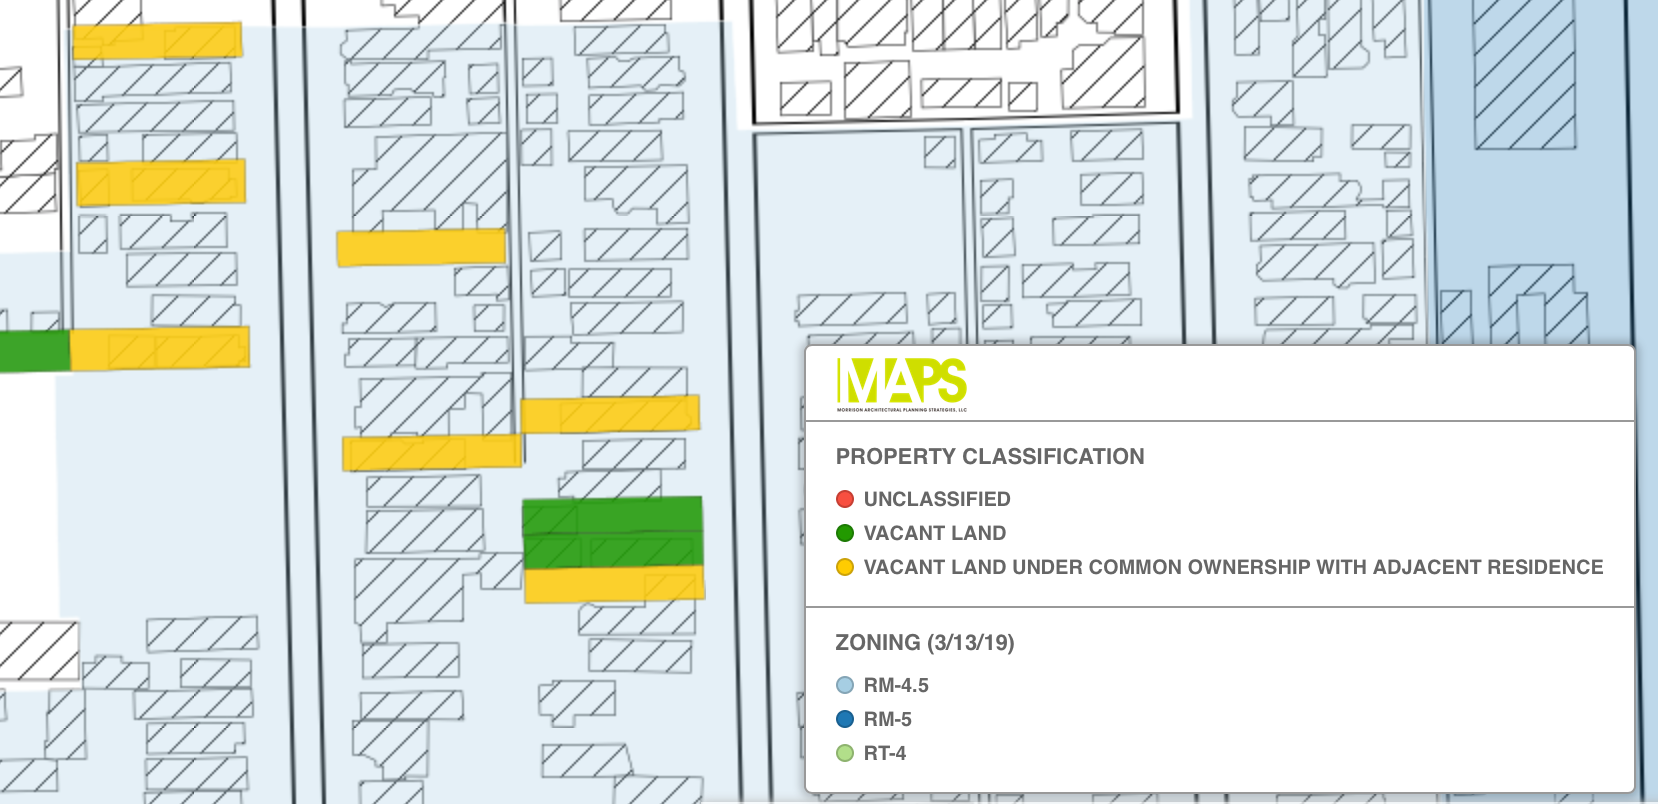 MAP Strategies - MAPS now makes maps – for site selection and custom on chicago street index, chicago submarket map, chicago arcology map, chicago cemetery map, chicago temperature map, denver rtd light rail route map, chicago permit parking map, chicago zip code map printable, chicago and surrounding suburbs maps, chicago topography map, chicago residential parking permit, chicago watershed map, chicago construction map, chicago attraction map interactive click, chicago zones, chicago annexation map, chicago budget, a long way from chicago map, chicago metra system map, chicago municipal code,